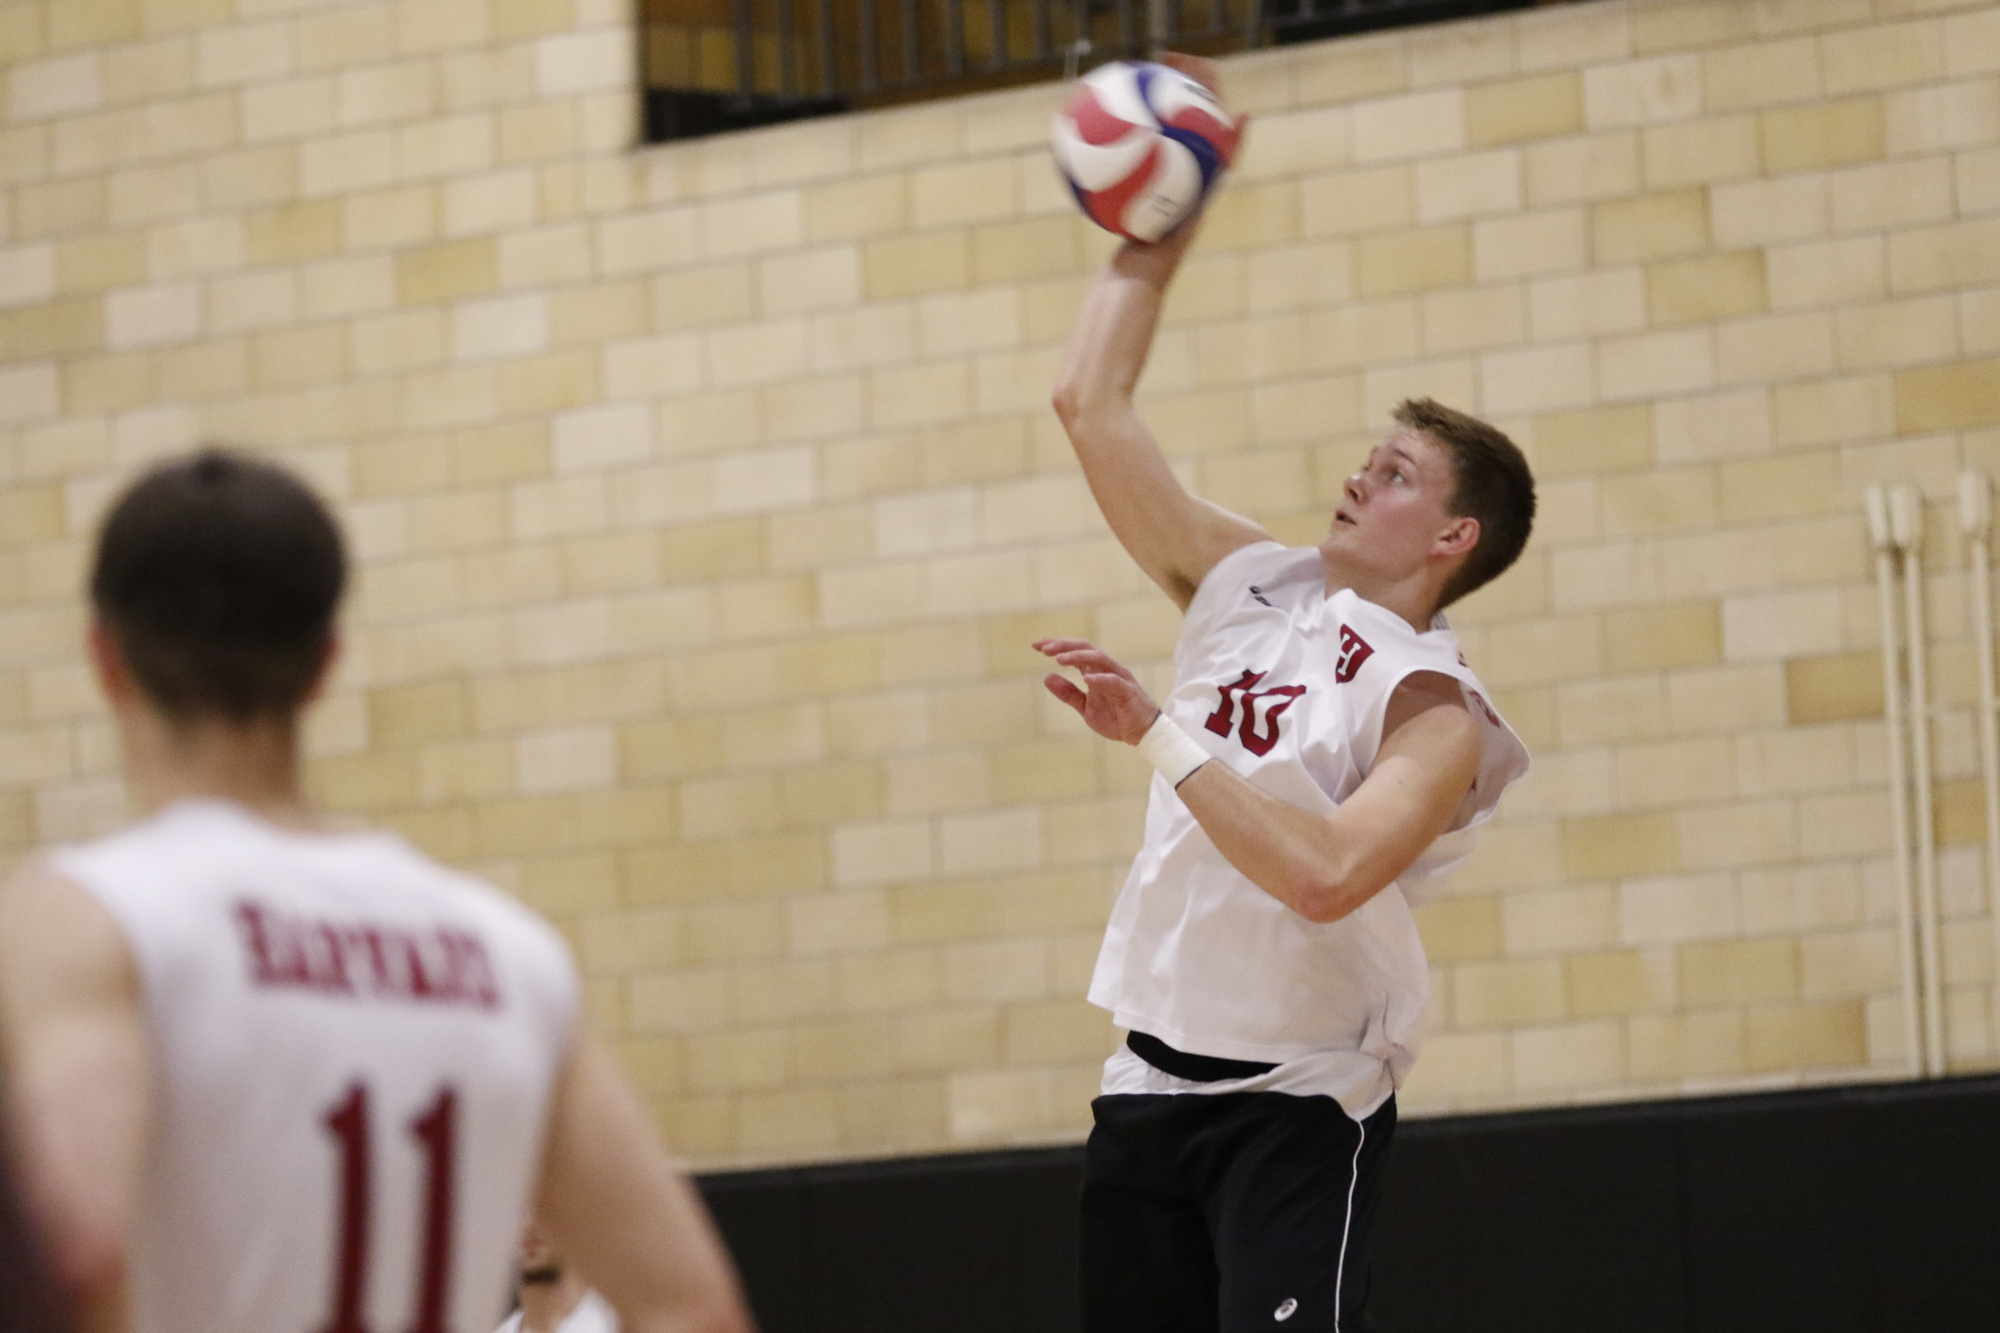 Sophomore setter Matthew Ctvrtlik led the team with eight out of its 35 total kills.